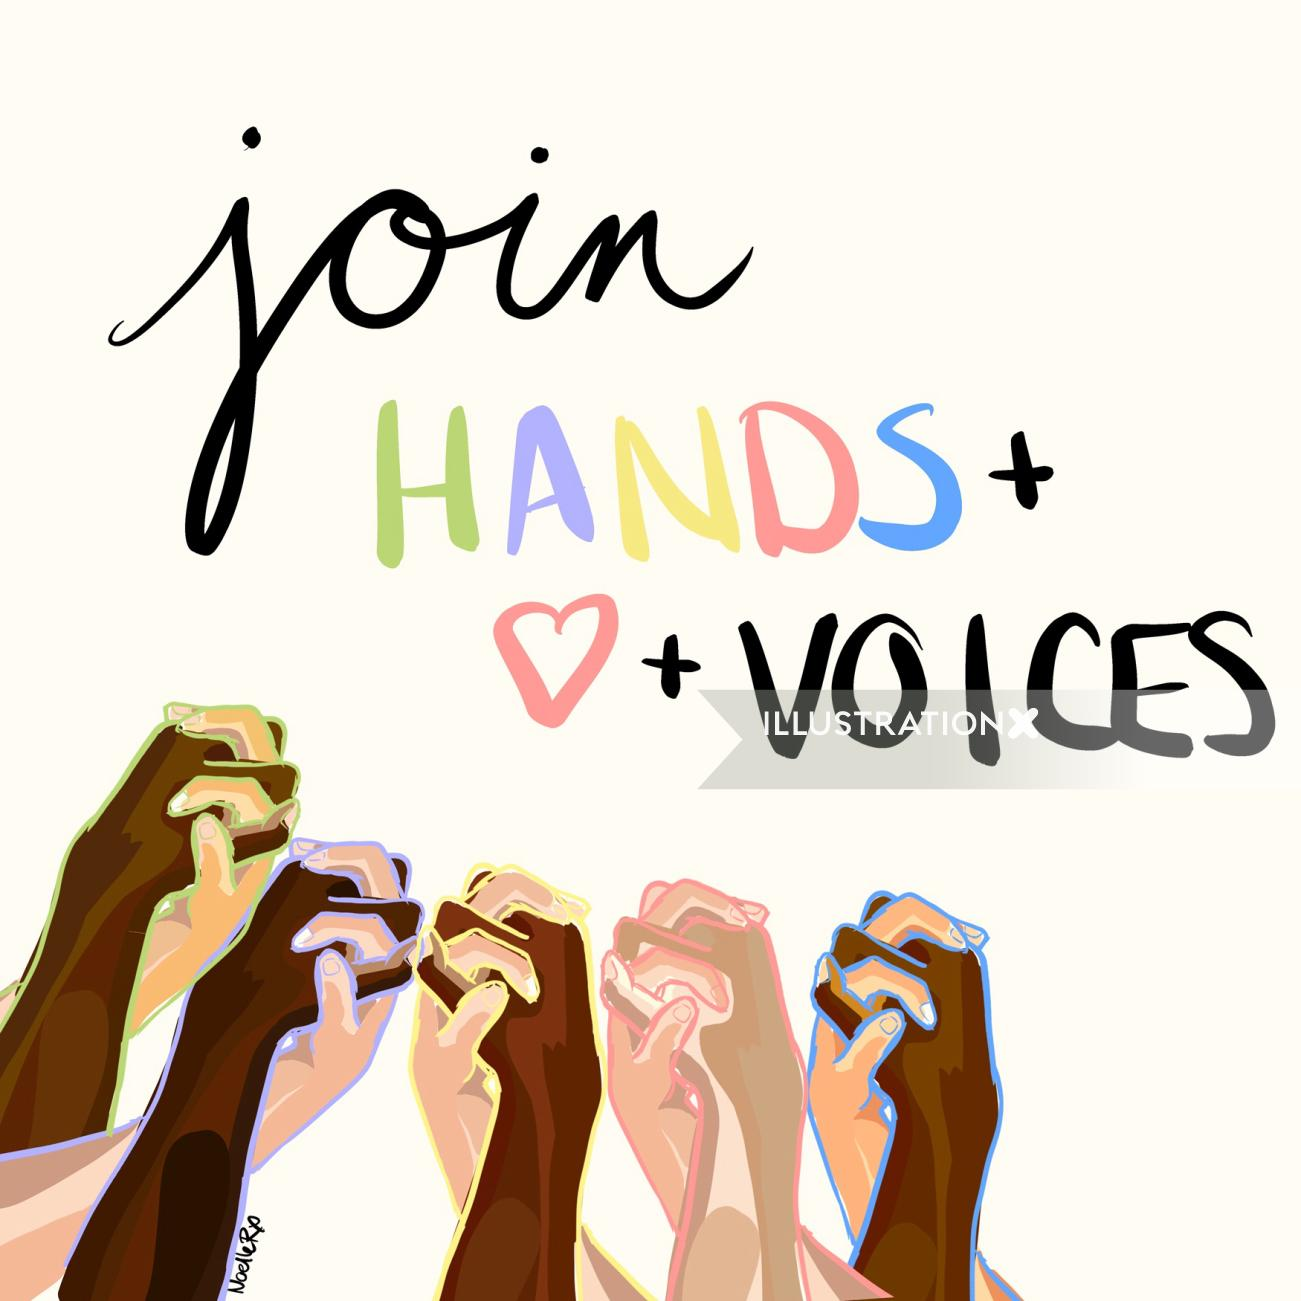 Digital lettering of join hands & voices